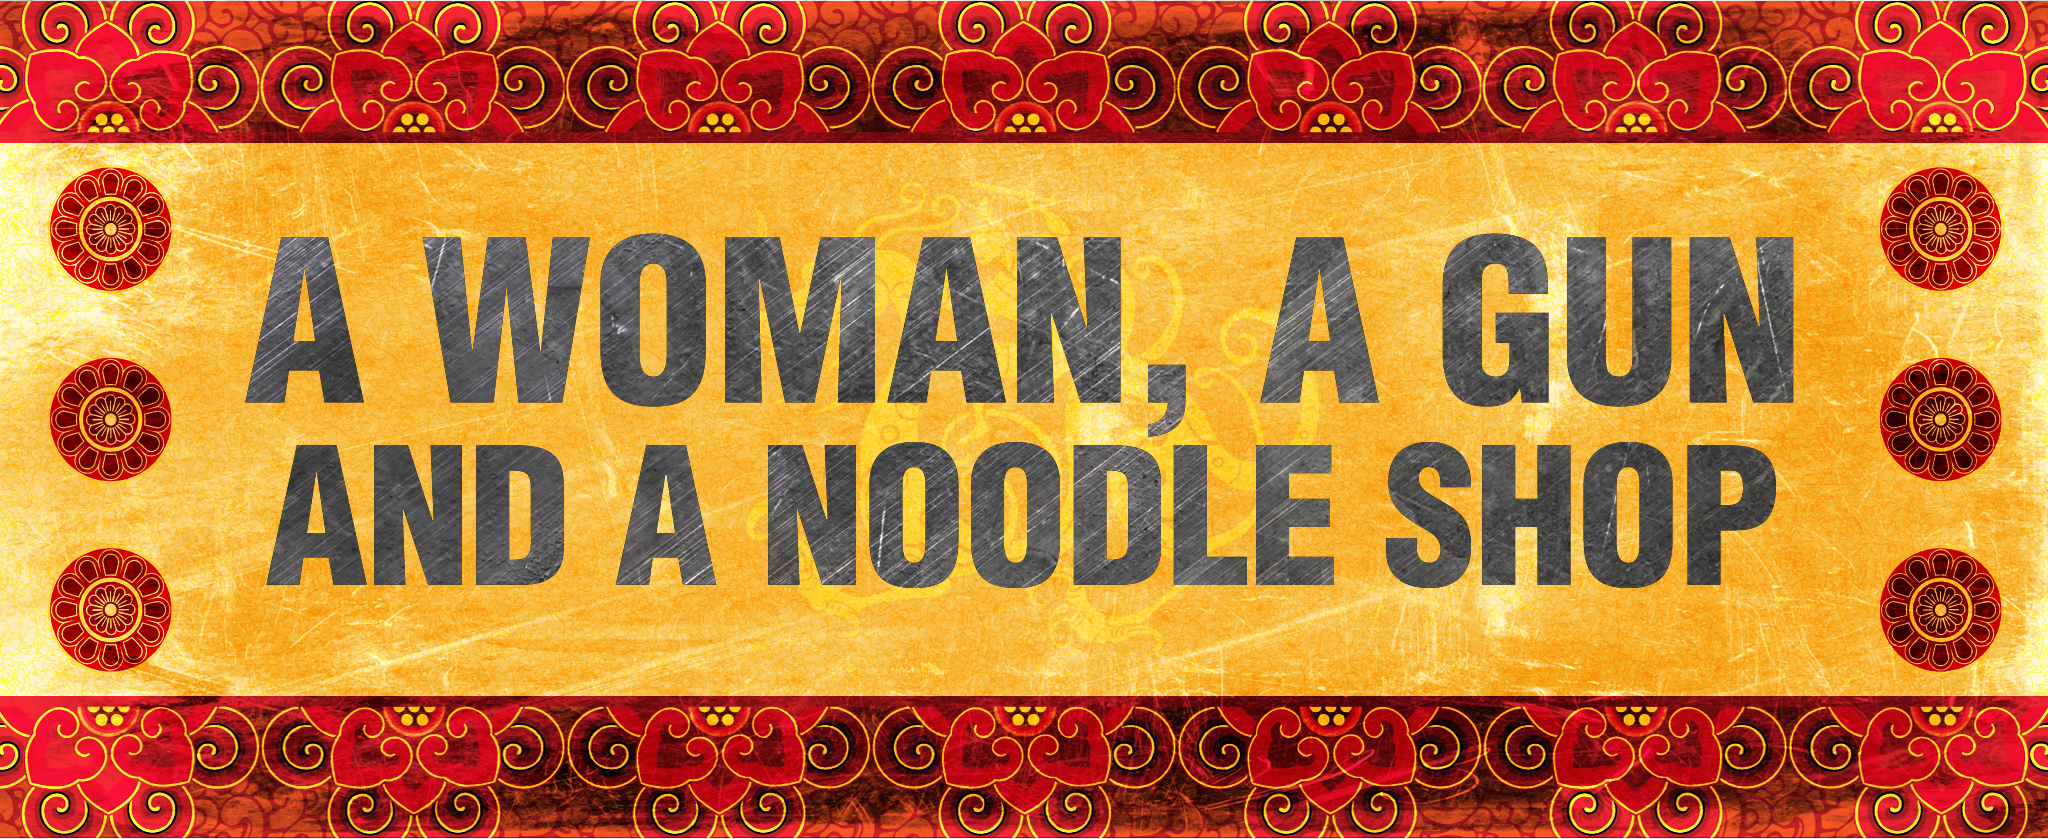 "TITLES FOR THE TRAILER OF ""A WOMAN, A GUN, AND A NOODLE SHOP"""